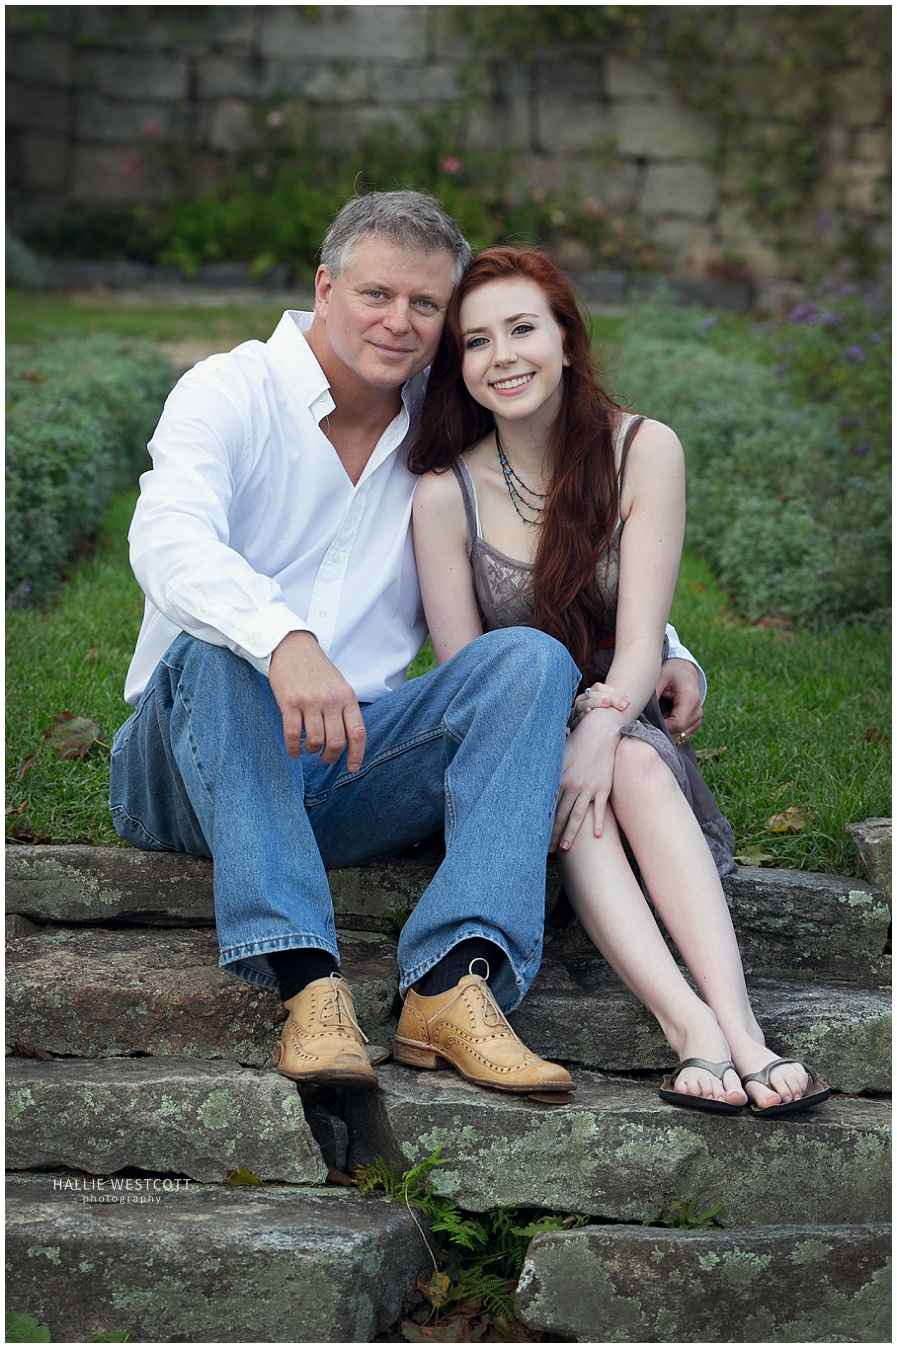 CT portriat photographer, Hallie Westcott takes father and daughter portraits at Harkness Park